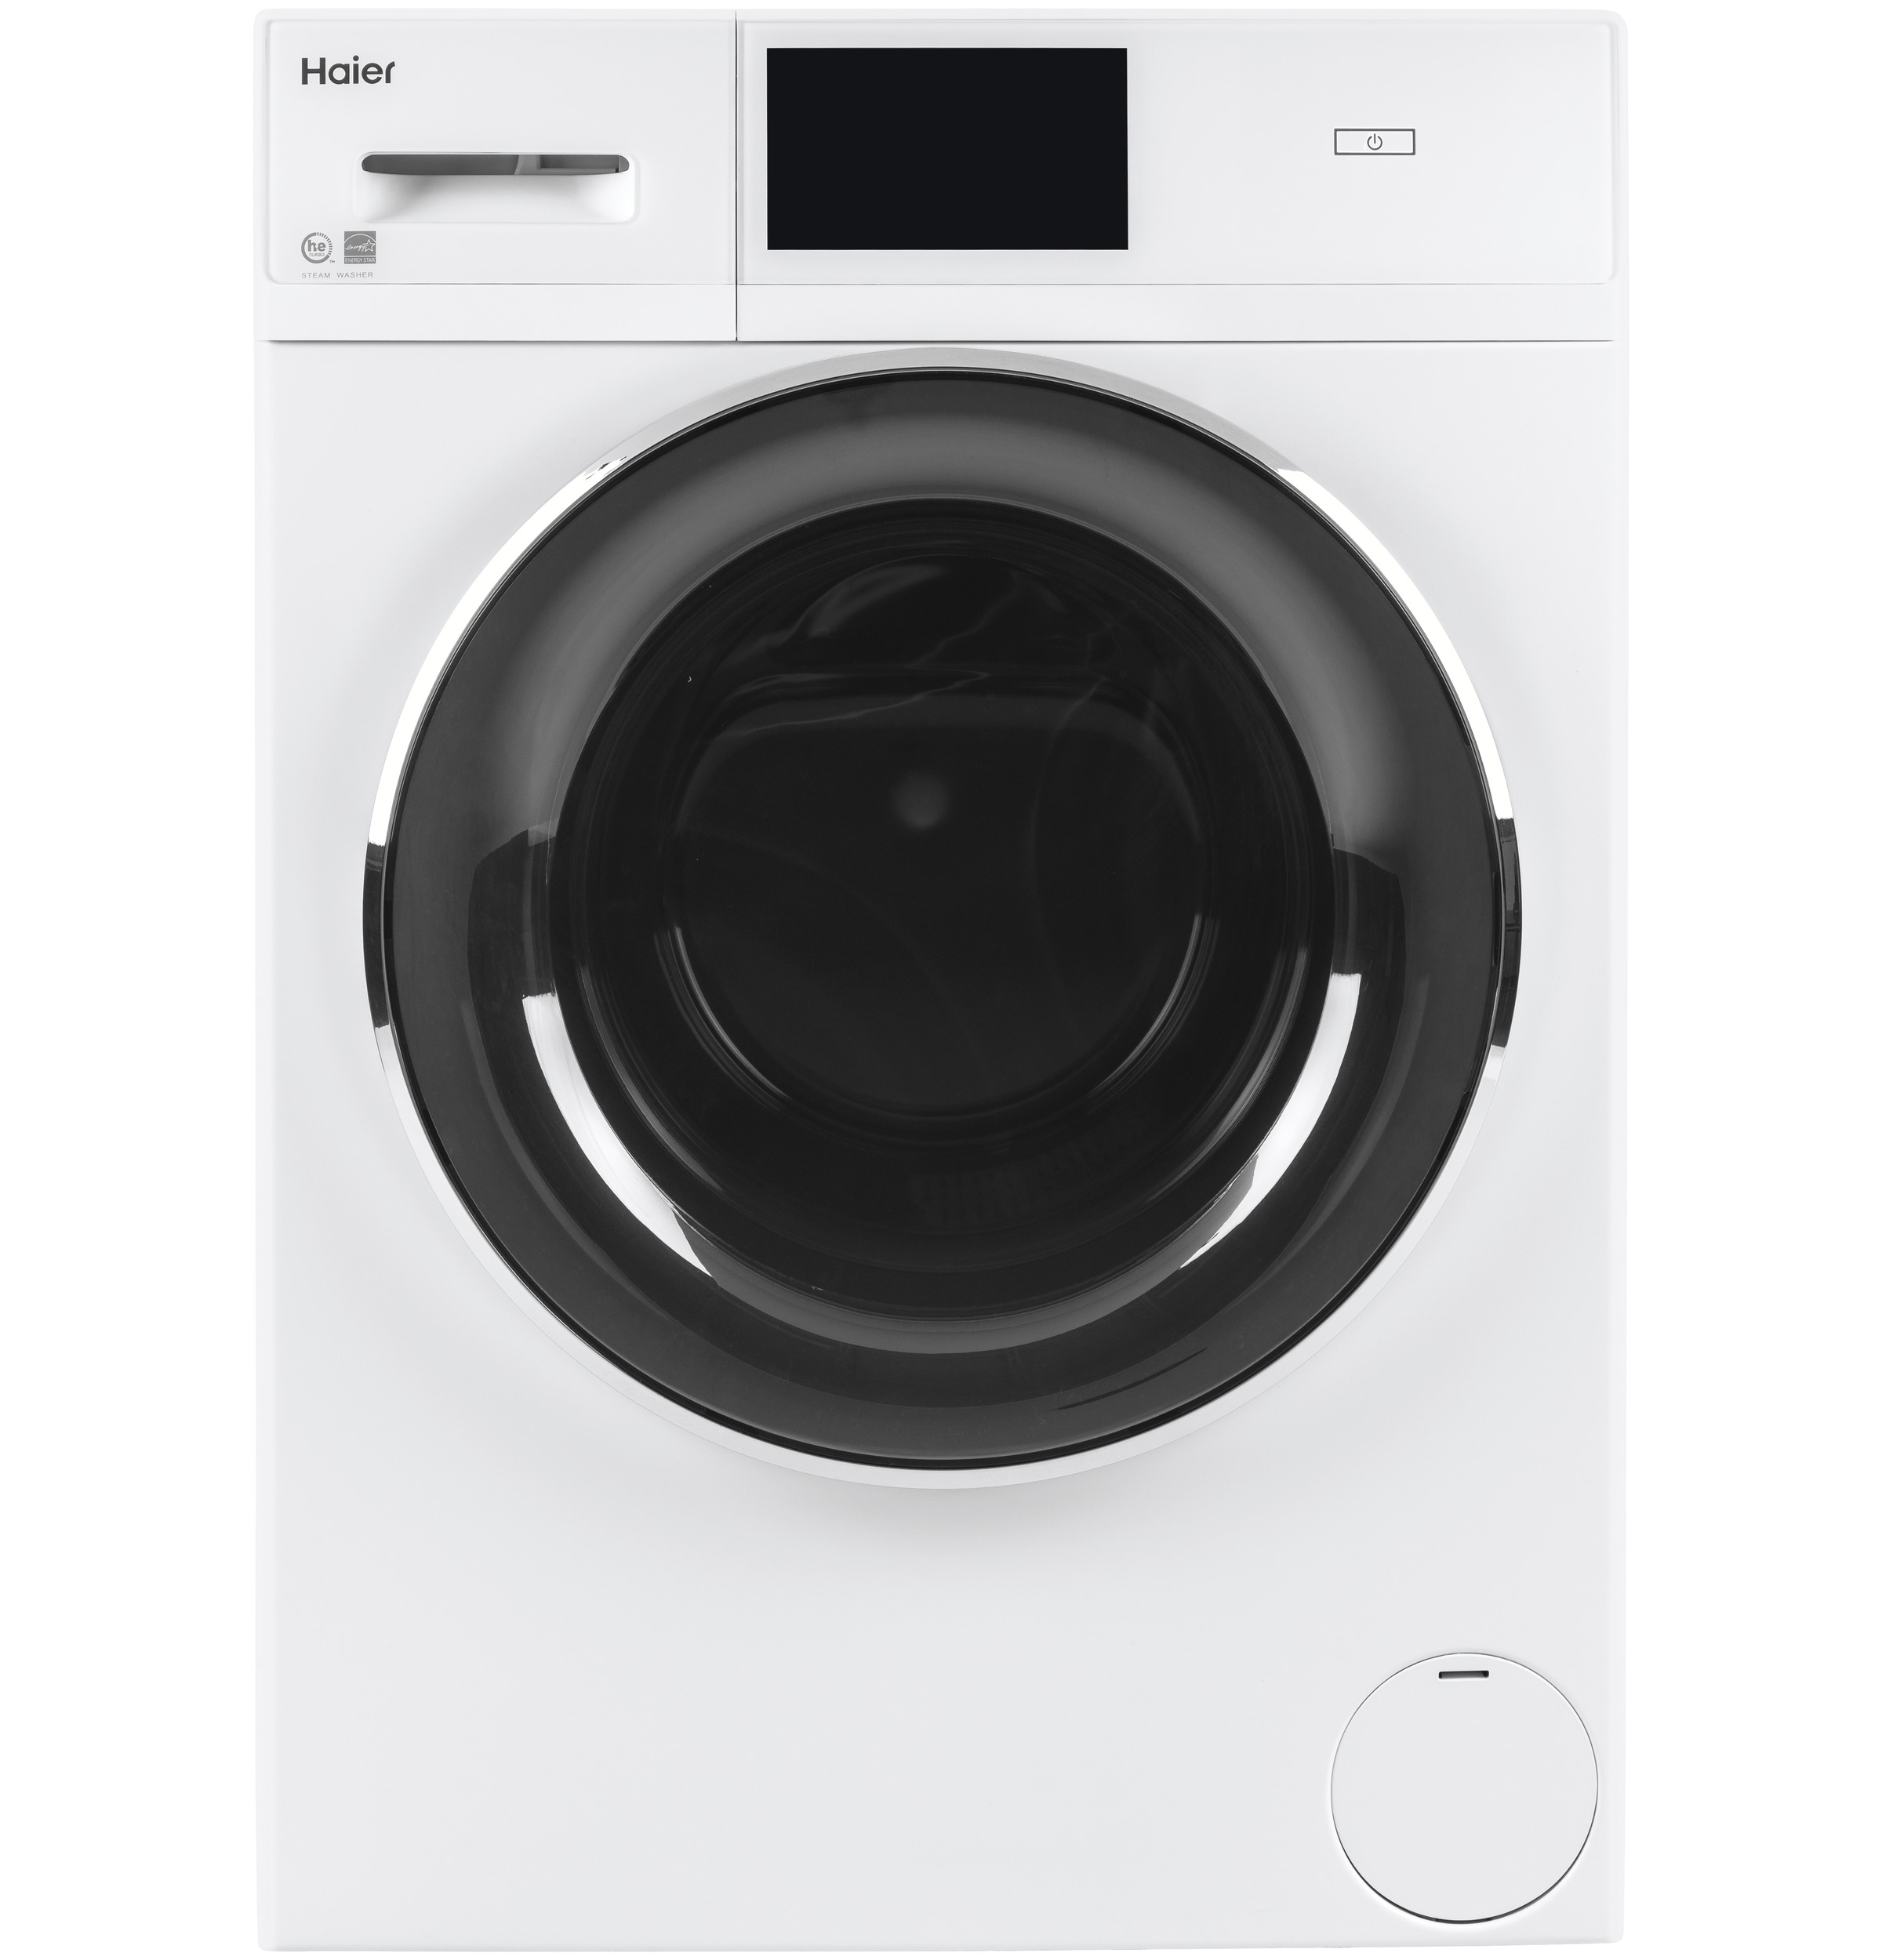 Haier 2.4 Cu. Ft. Smart Frontload Washer